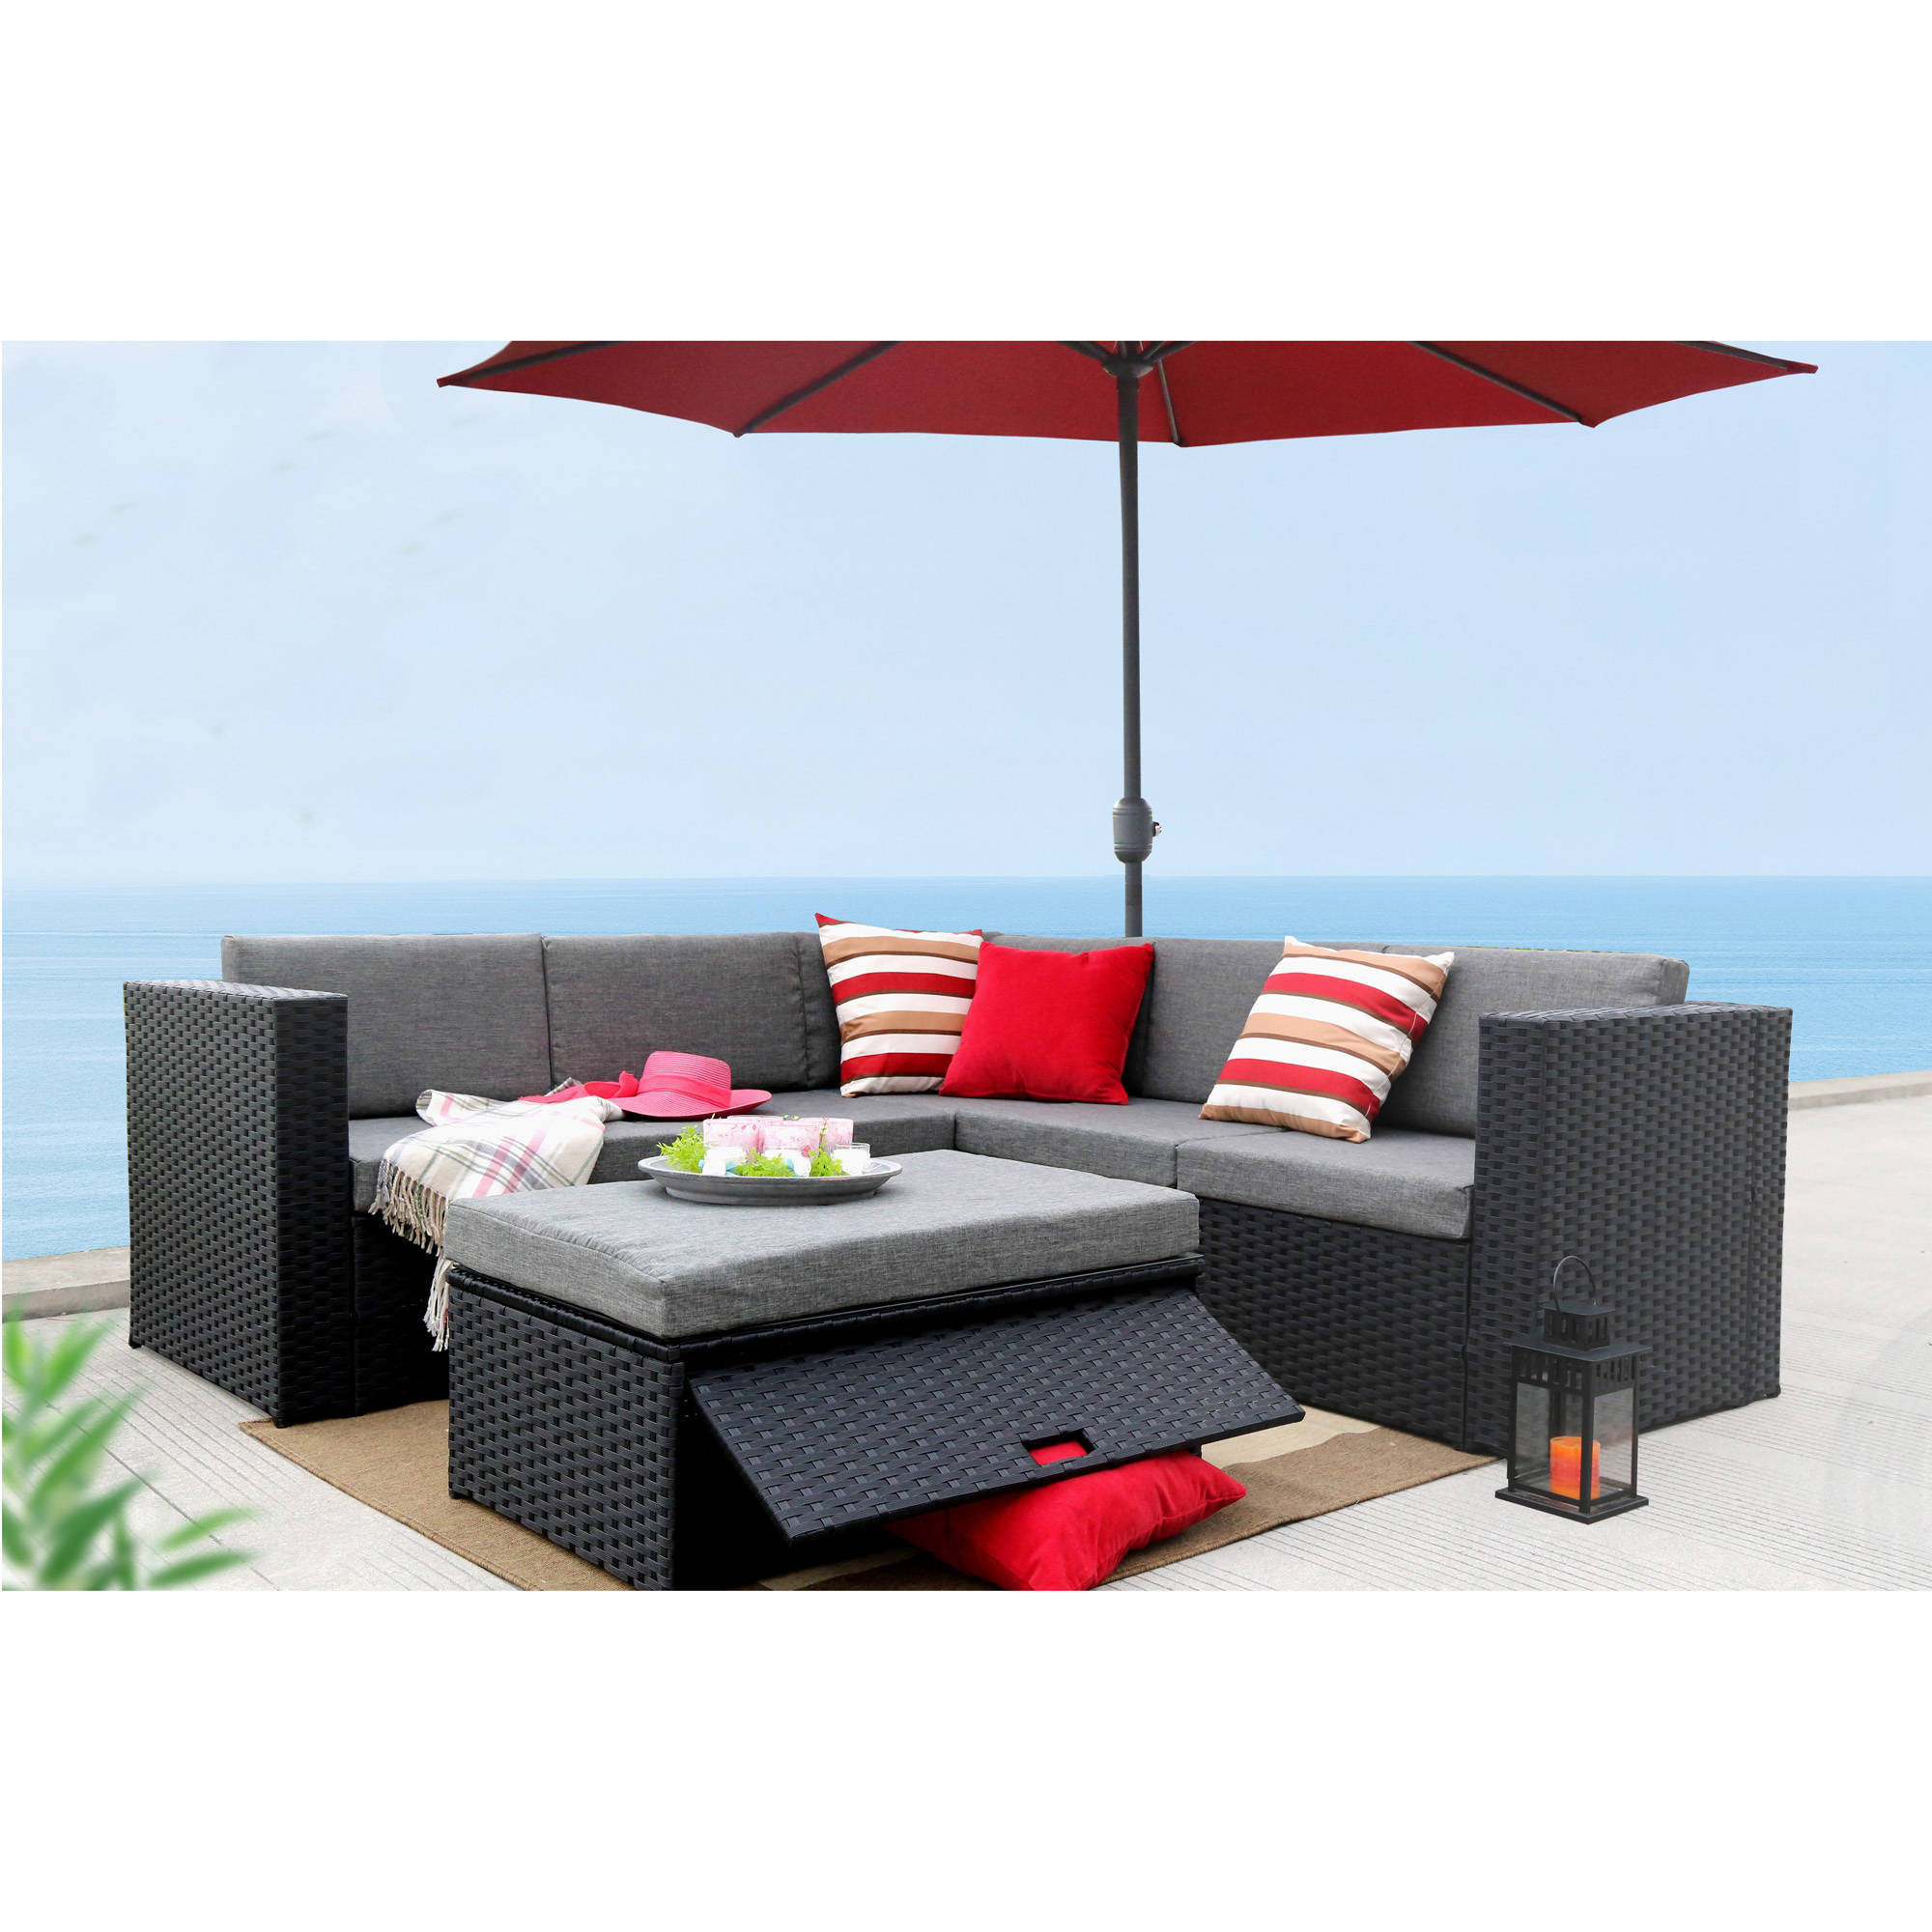 Baner Garden Outdoor Furniture Complete Patio PE Wicker Rattan Garden Corner Sofa Couch Set, Black, 4 Pieces